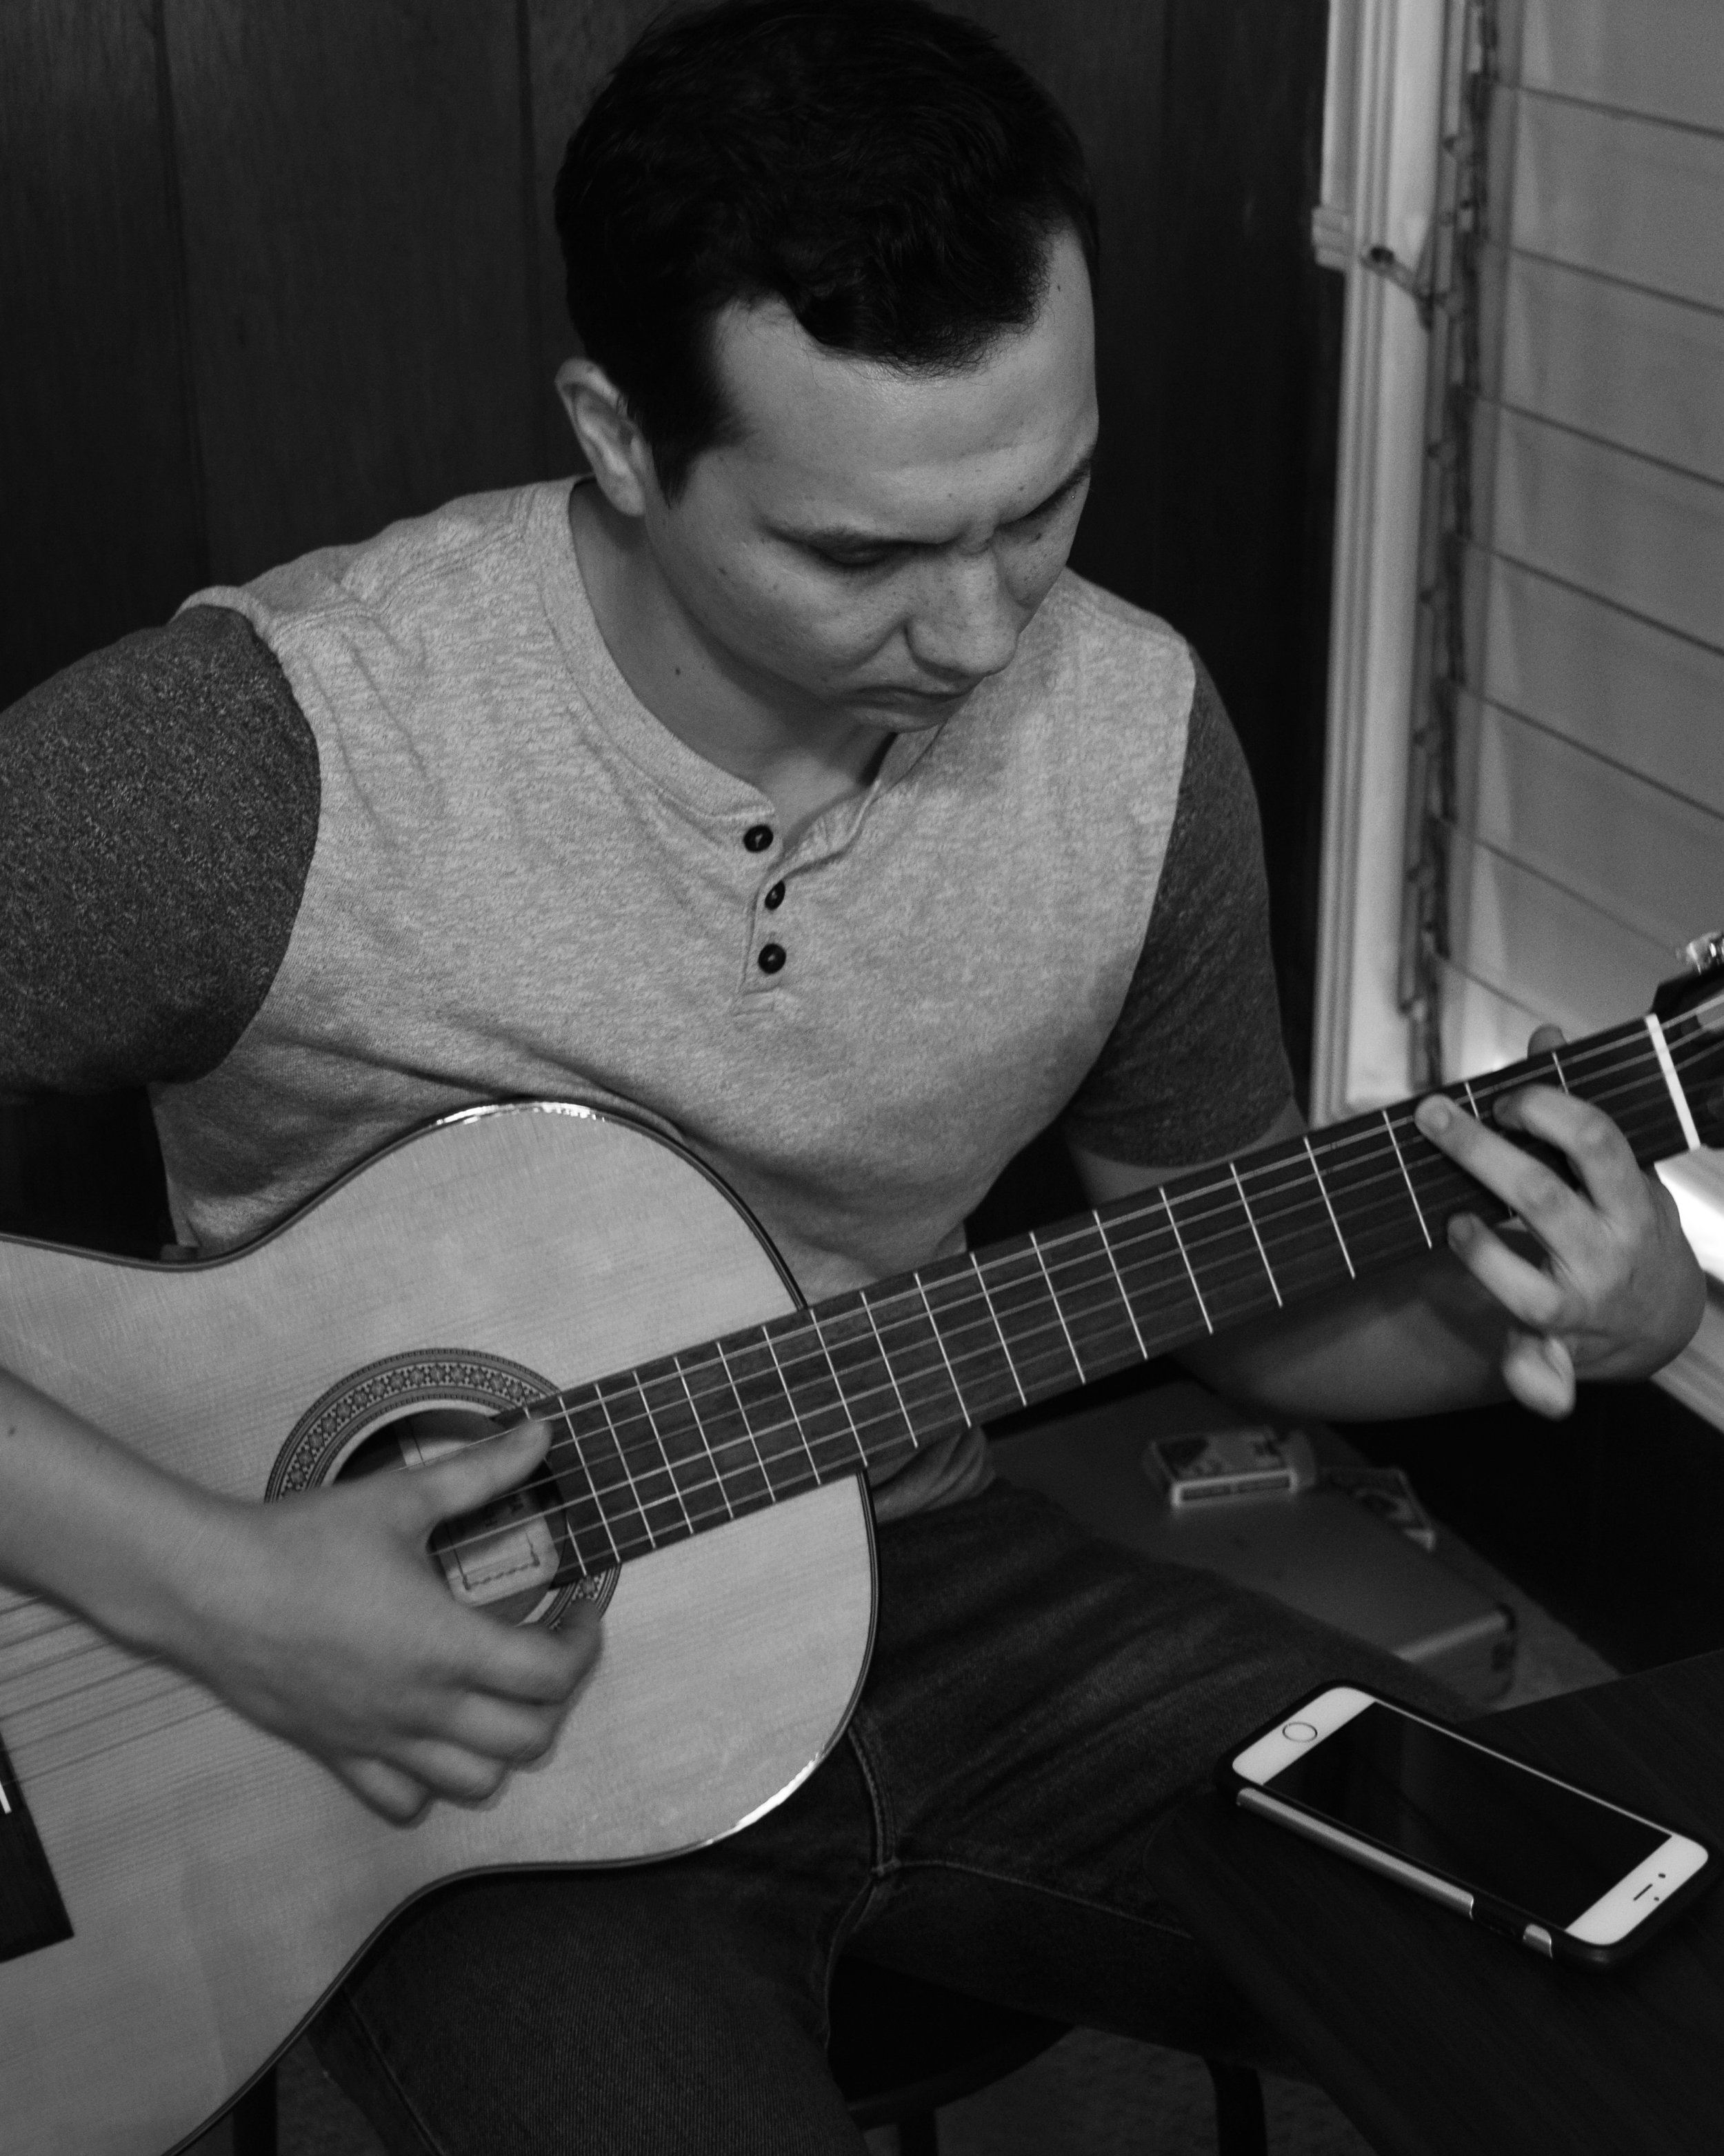 Matt shows more talent by playing a song on the guitar. Soon after this photo was taken, we practiced a call and response exercise together.